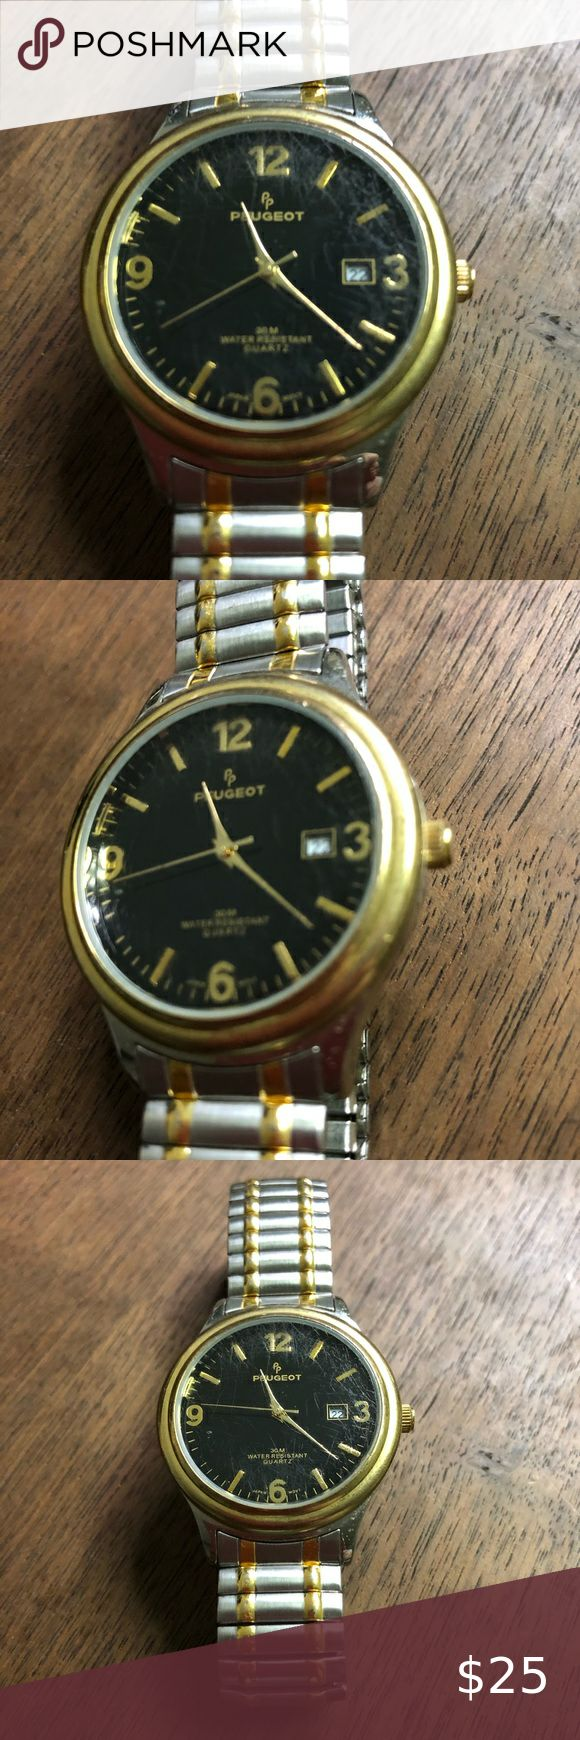 Men S Peugeot Watch In Silver And Gold Guc Men S Peugeot Watch Gold And Silver Stretch Band Good Used Condition See In 2020 Silver Stretch Bands Mens Accessories